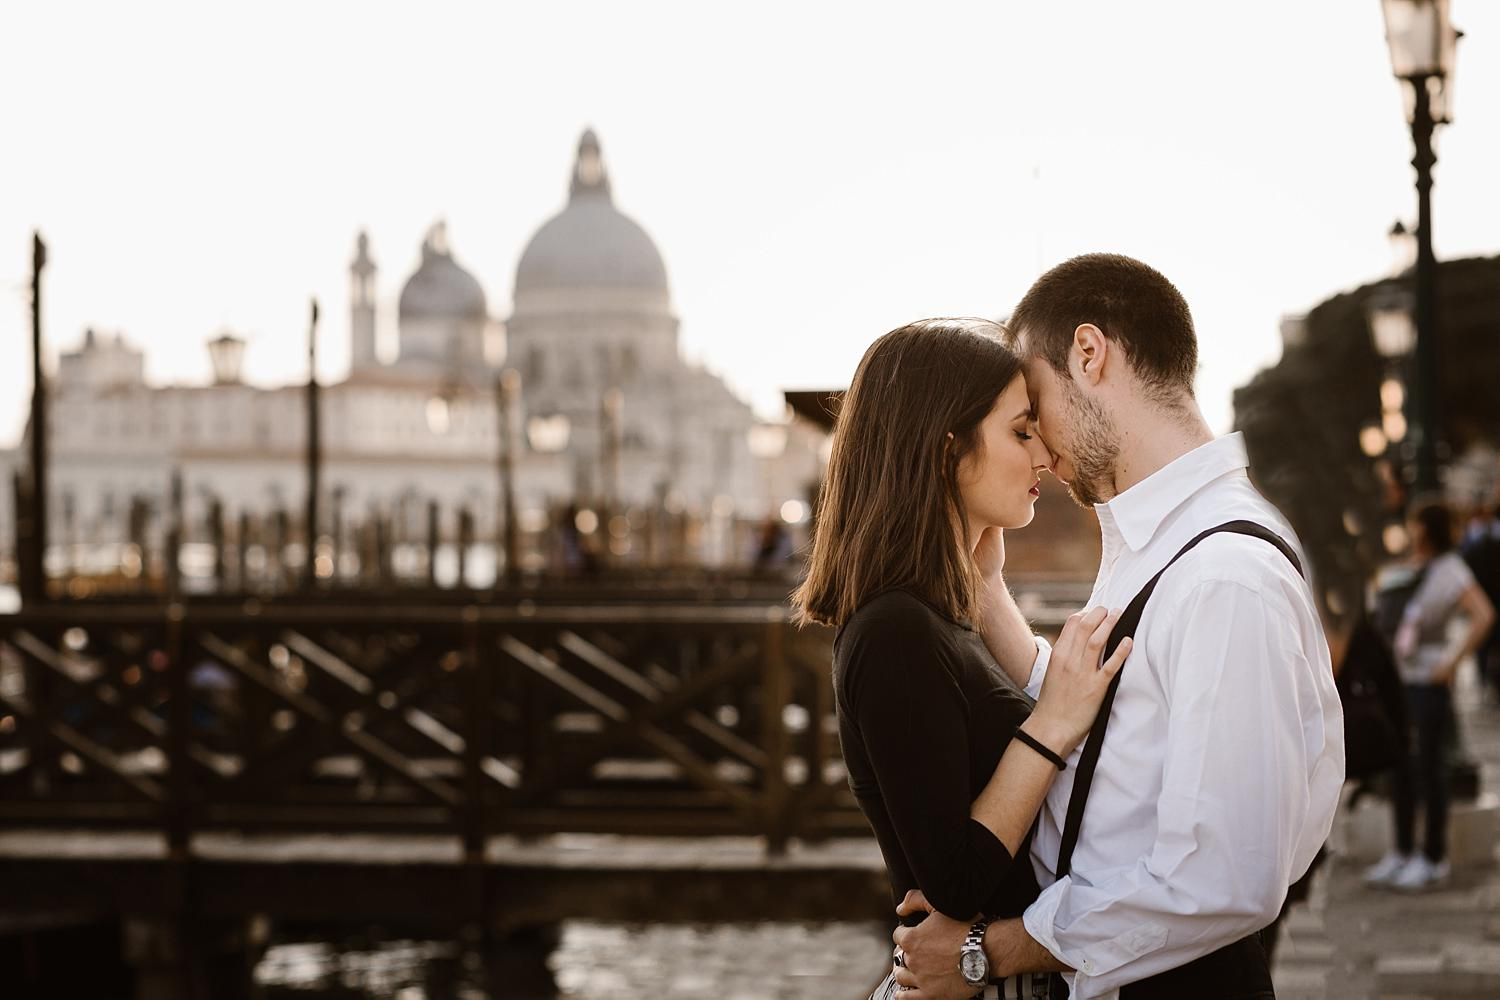 GL 90 - Giulia & Leonardo - An Intimate Shooting in Venice